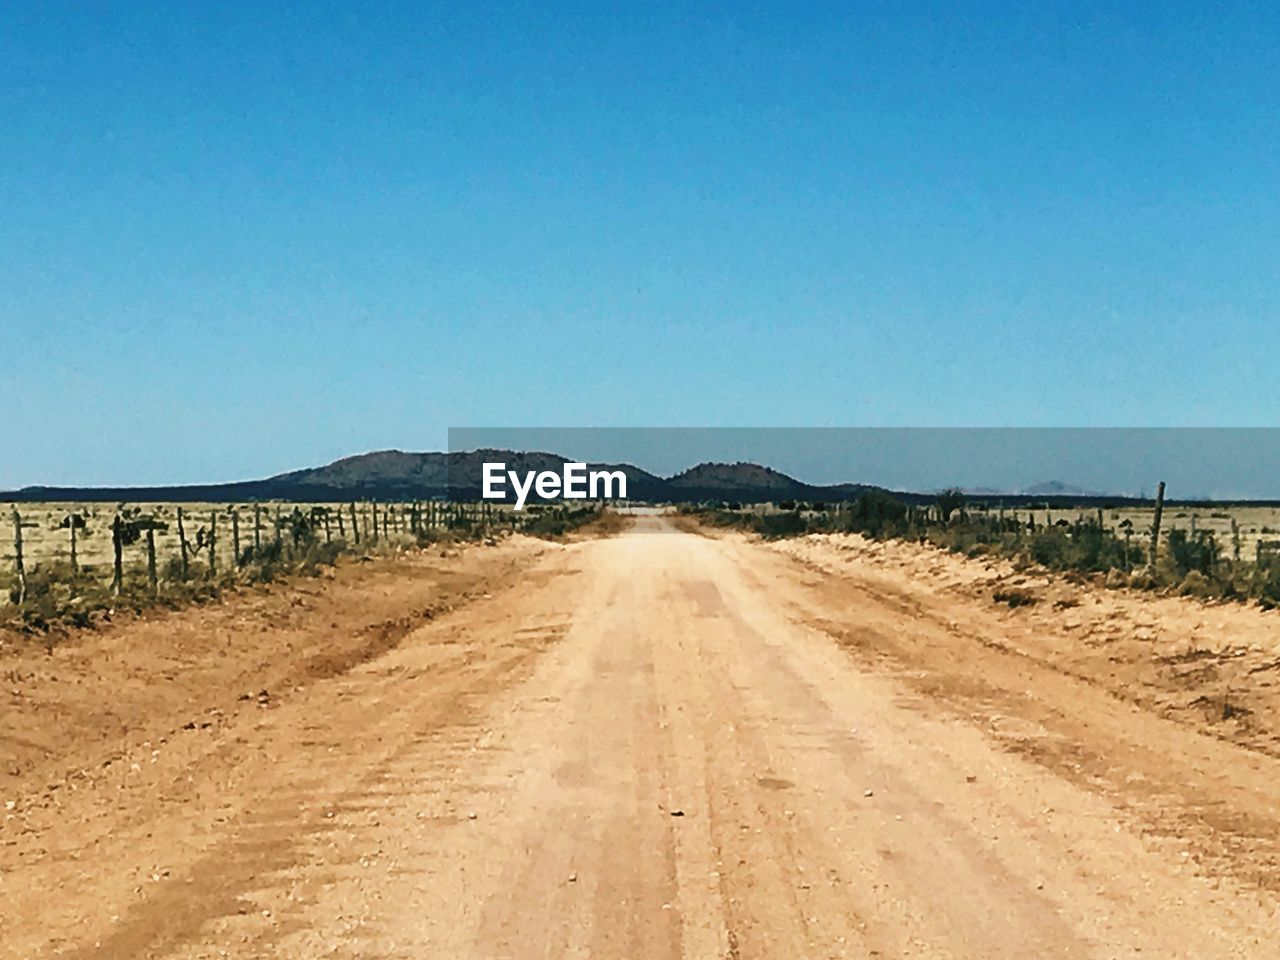 clear sky, landscape, the way forward, road, blue, copy space, no people, day, outdoors, transportation, sunlight, mountain, scenics, arid climate, nature, desert, sky